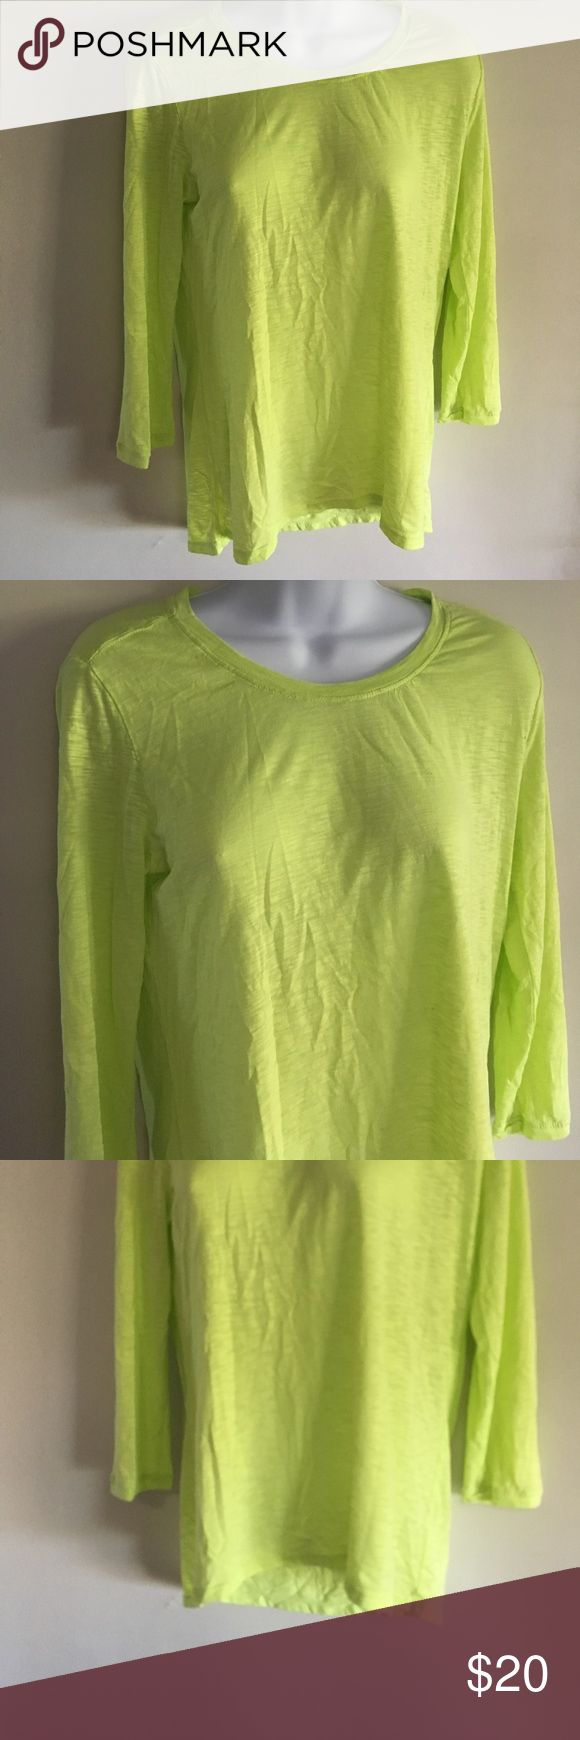 Athleta Hi-Low 3/4 Sleeve Cotton Blend Shirt Neon yellow/green color! Very lightweight. Size small Athleta Tops Tees - Long Sleeve